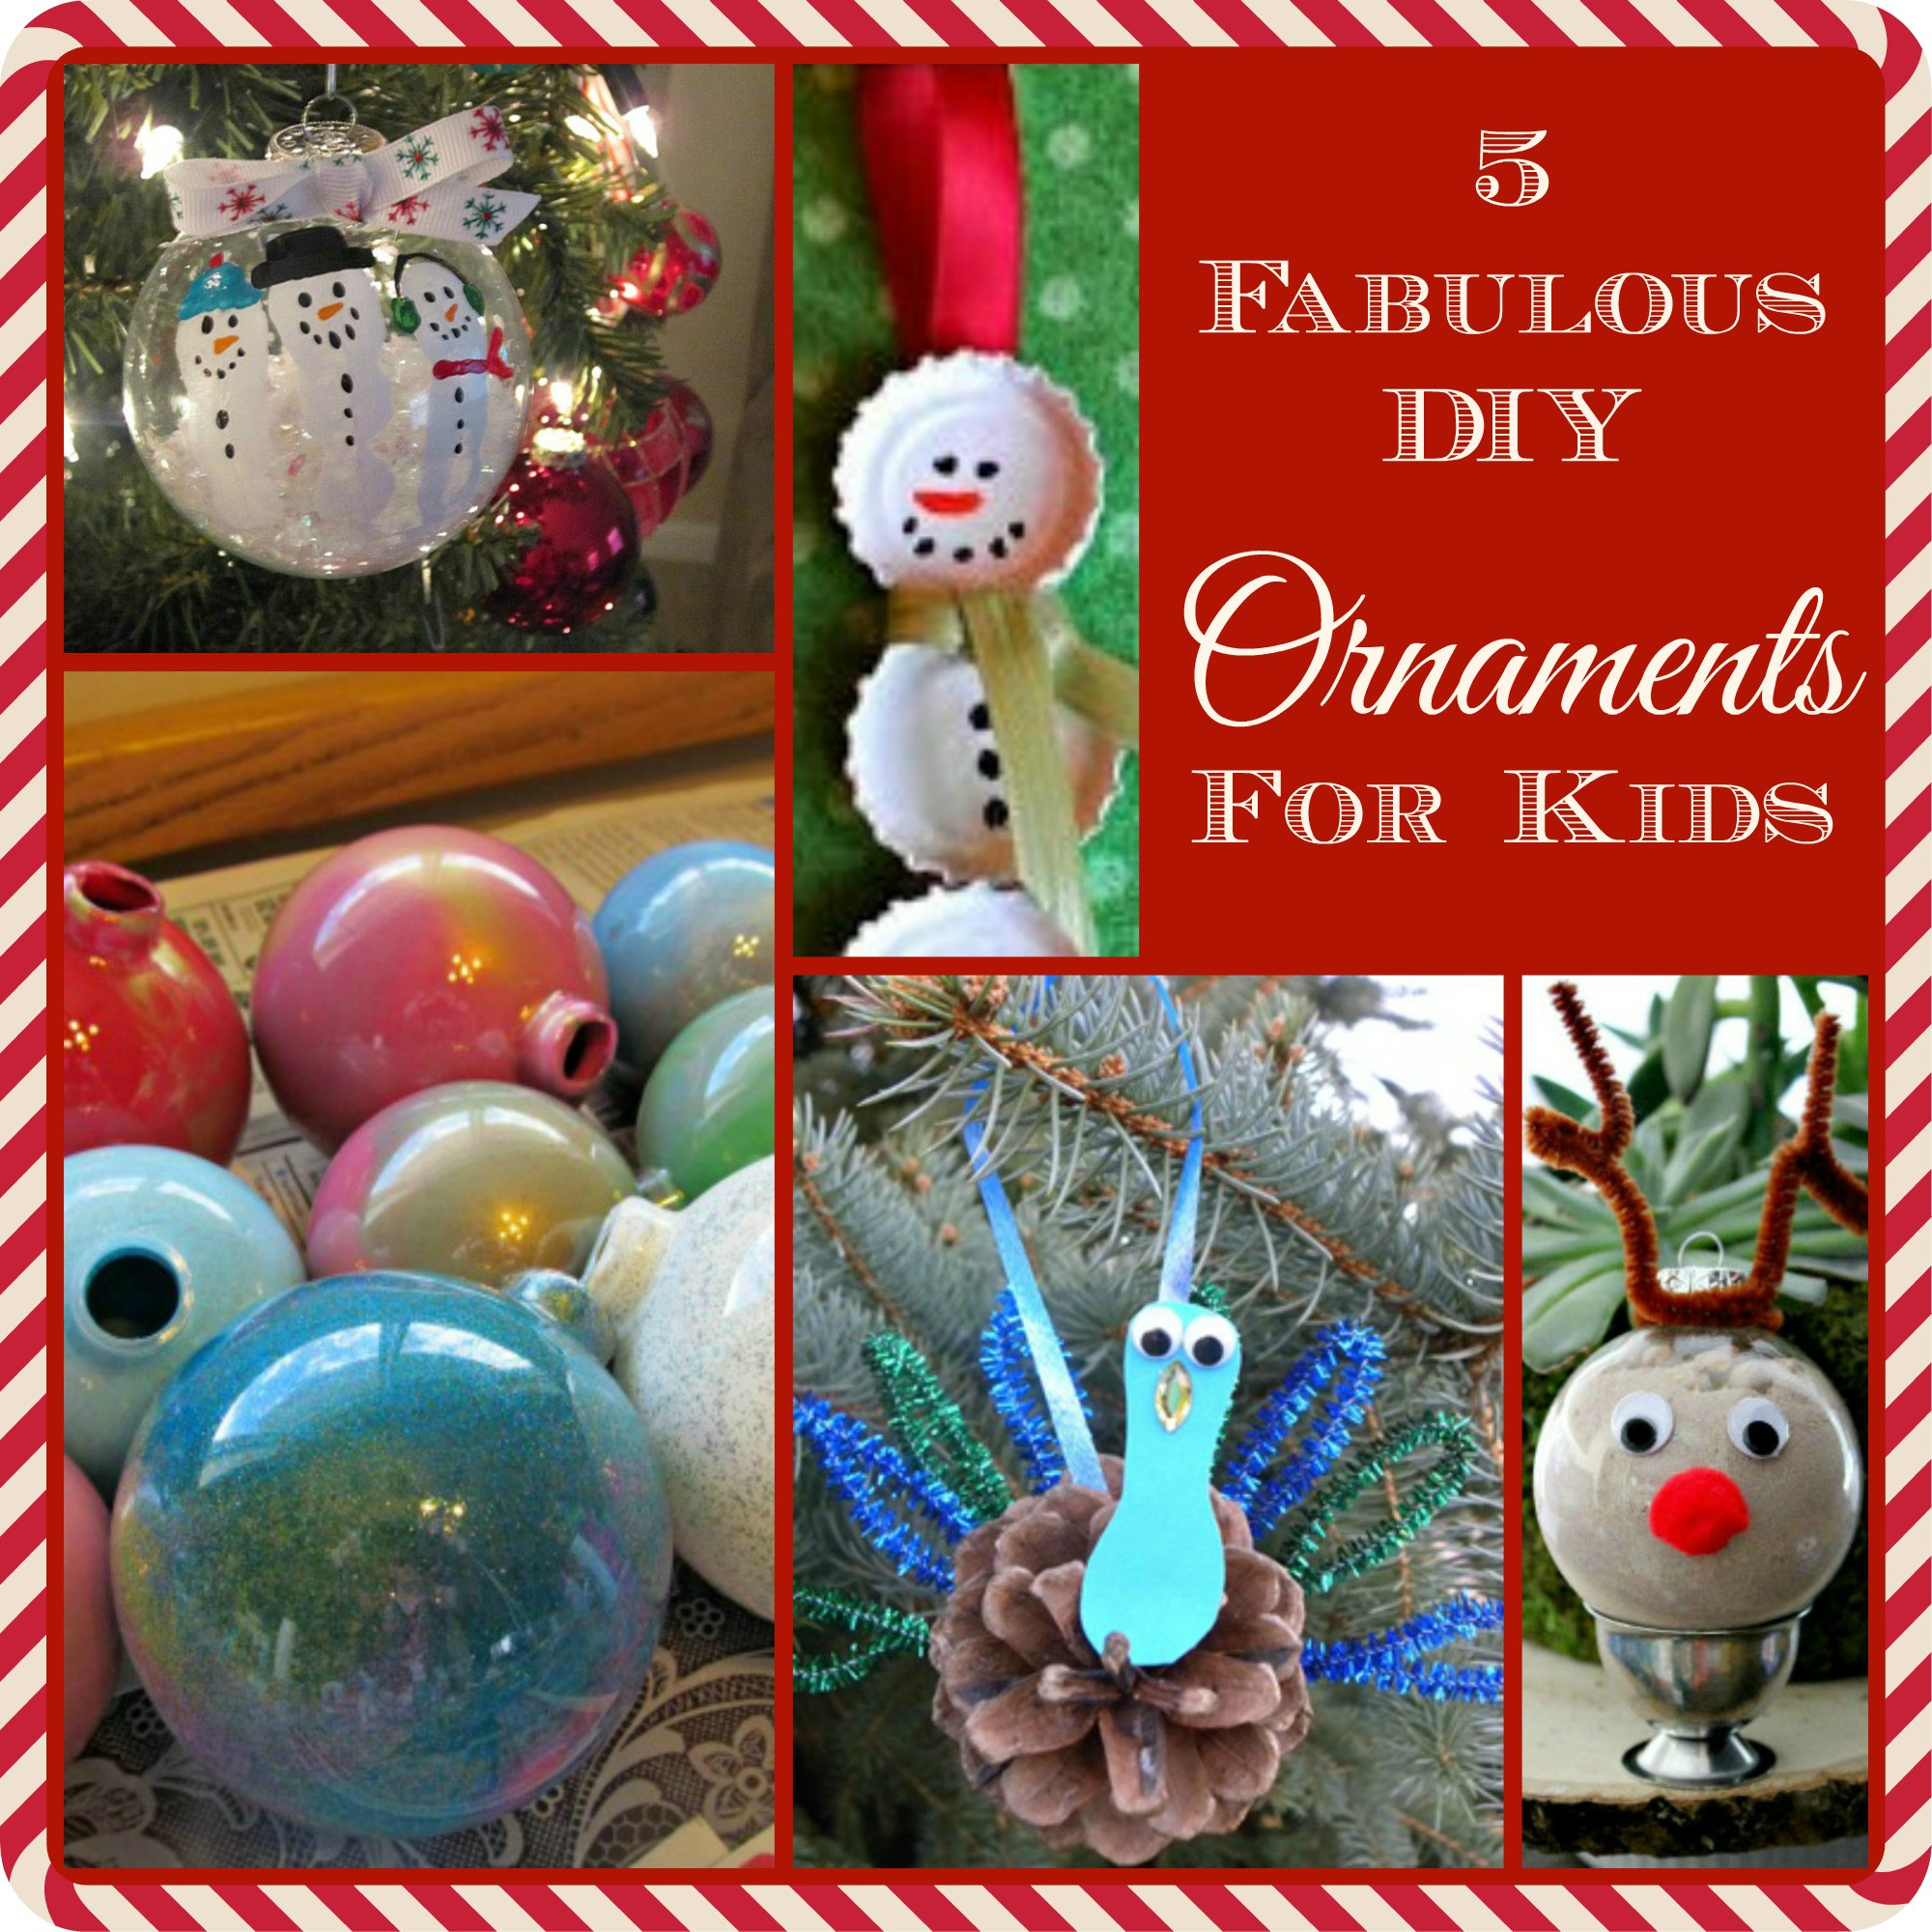 Best ideas about DIY Kids Ornaments . Save or Pin 5 Fabulous DIY Christmas Ornaments for Kids The Now.